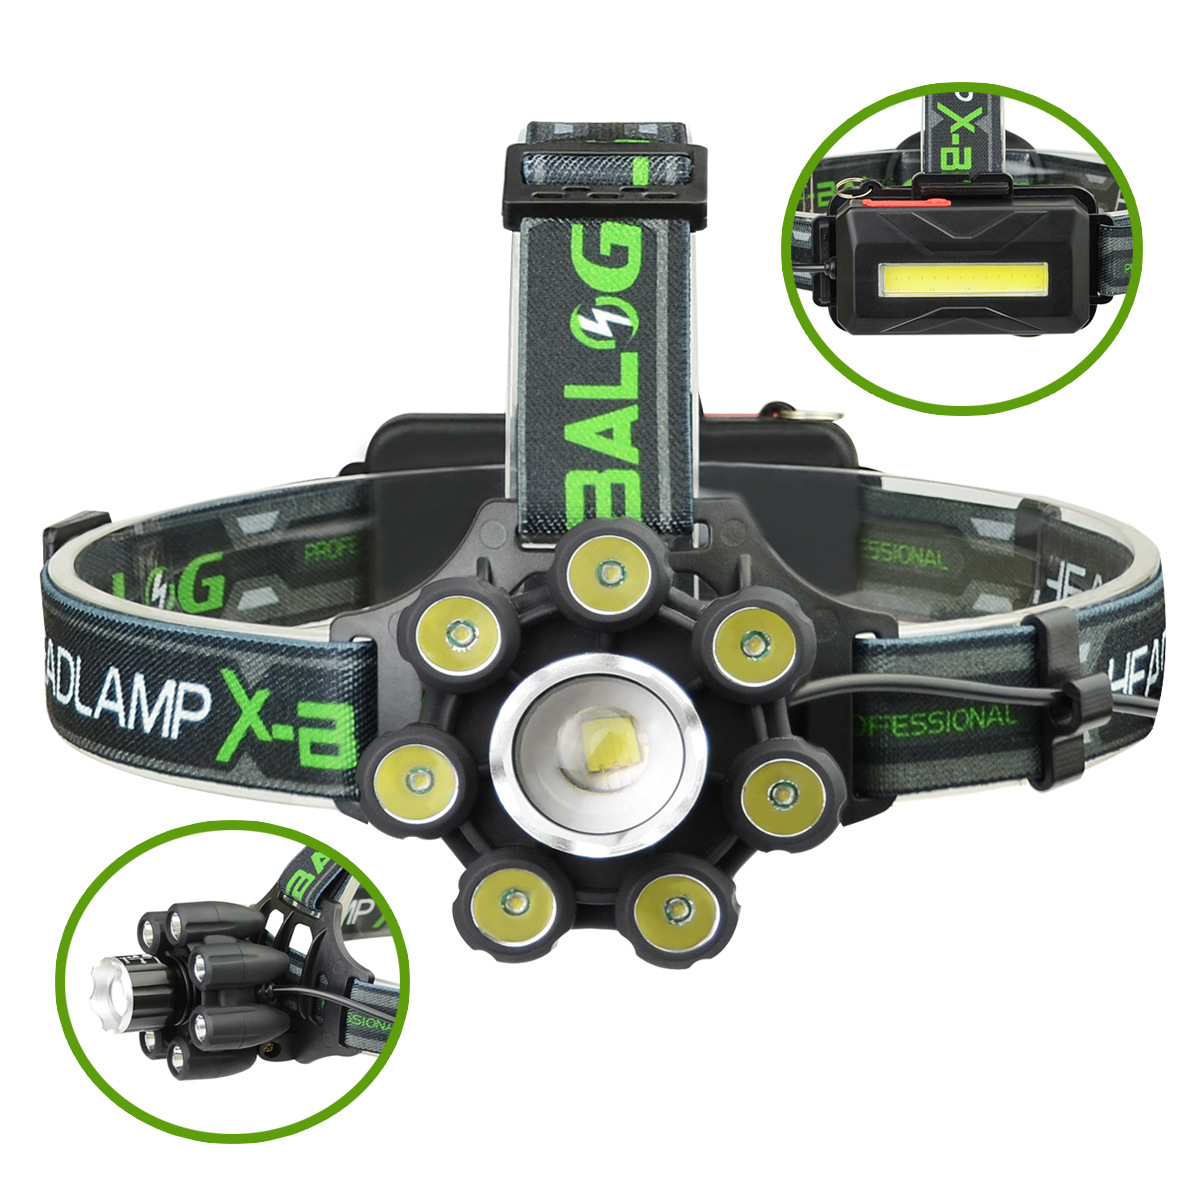 XANES BL-T88-B6 3350LM T6-7XPE 6 Modes Telescopic Zoom Cycling Hunting Camping Outdoor LED Headlamp USB Charging Interface